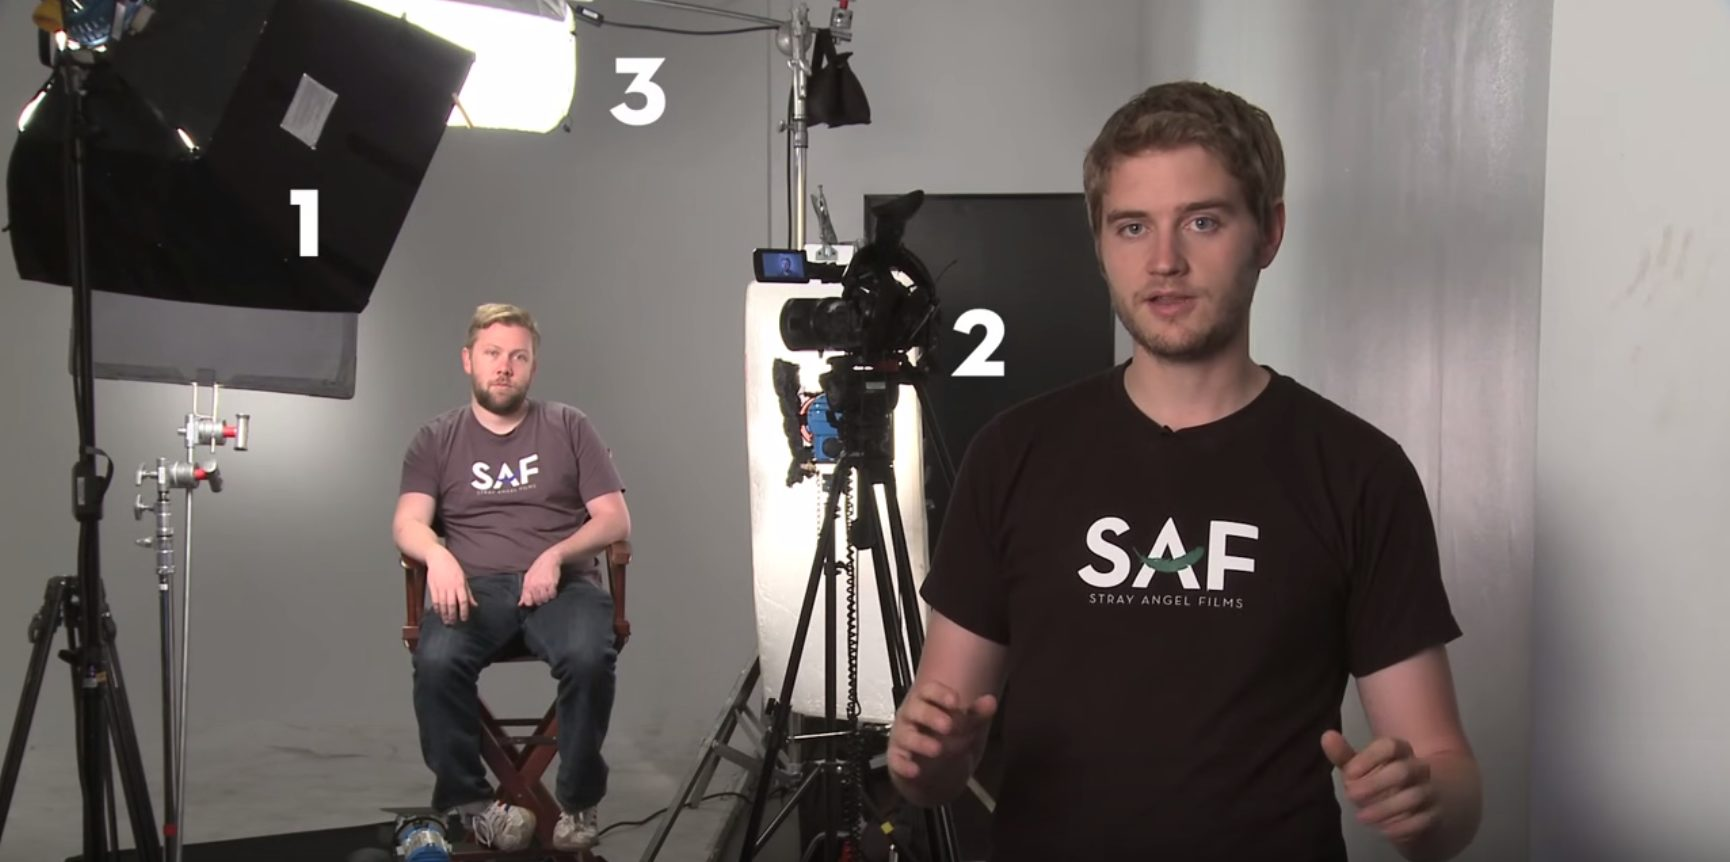 Our Most Popular Filmmaking Videos